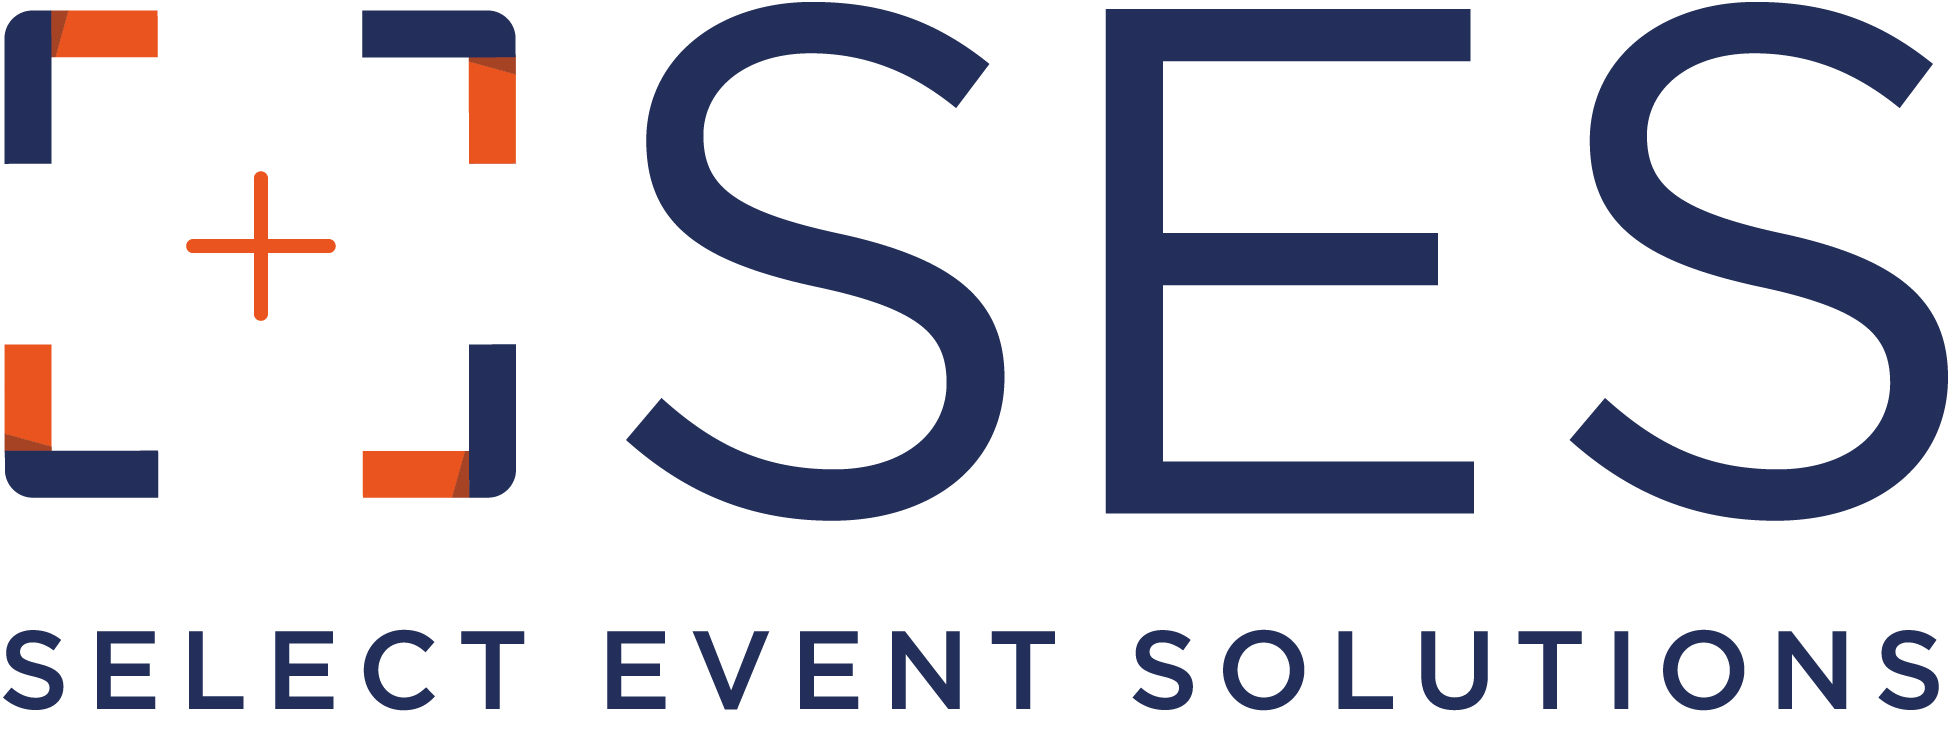 Select Event Solutions, Ltd.